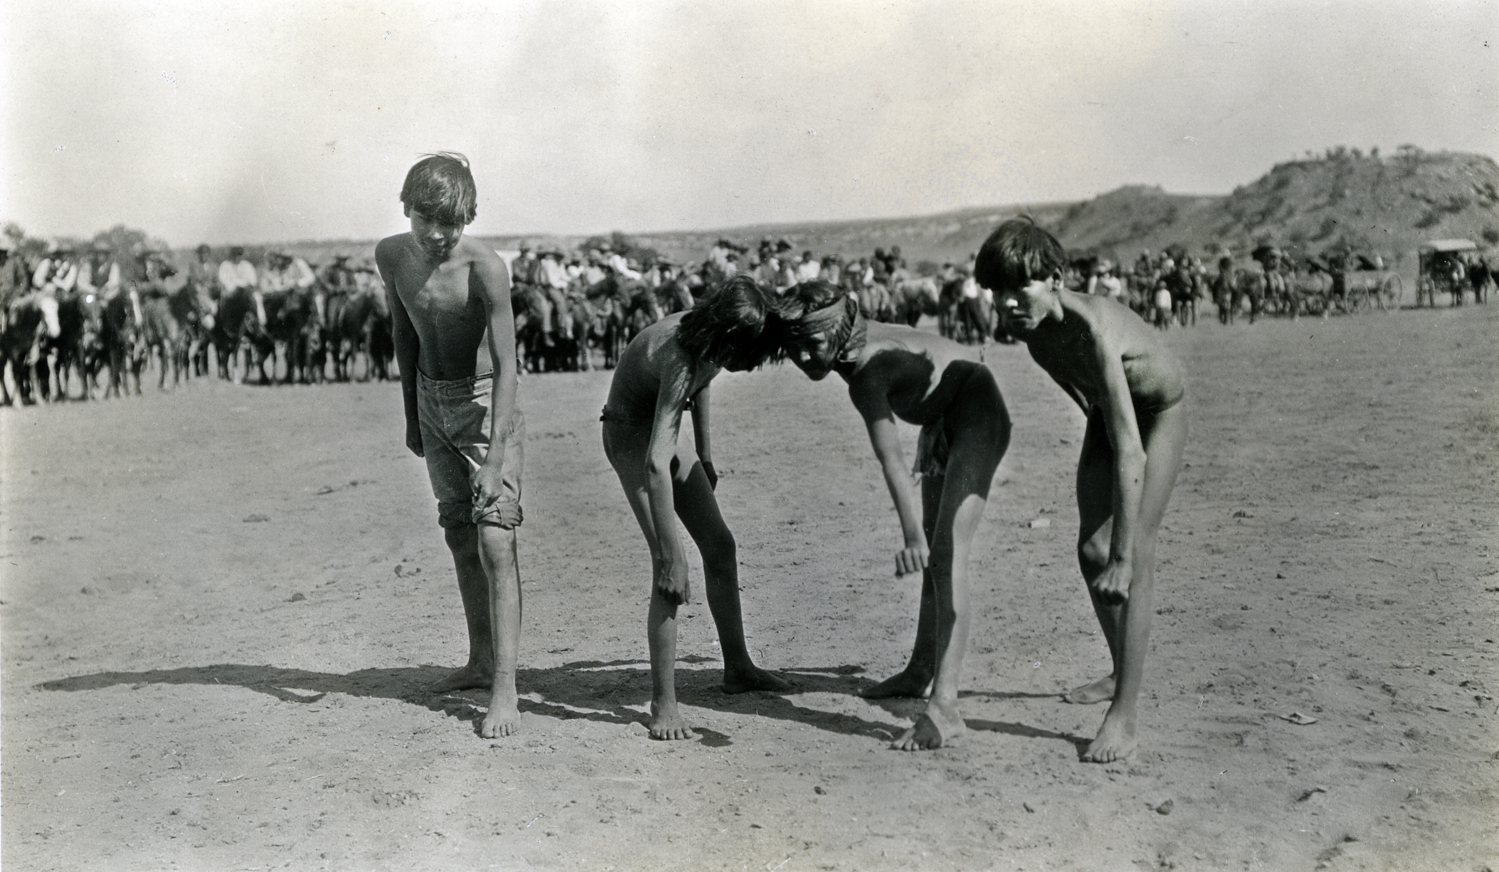 Navajo Boys at Start of Footrace, Navajo Reservation, Arizona, July 4, 1913. Photograph by Joseph Dixon. Courtesy of the Mathers Museum of World Cultures, Wanamaker Collection, Indiana University, Bloomington, I.N., W-4760.